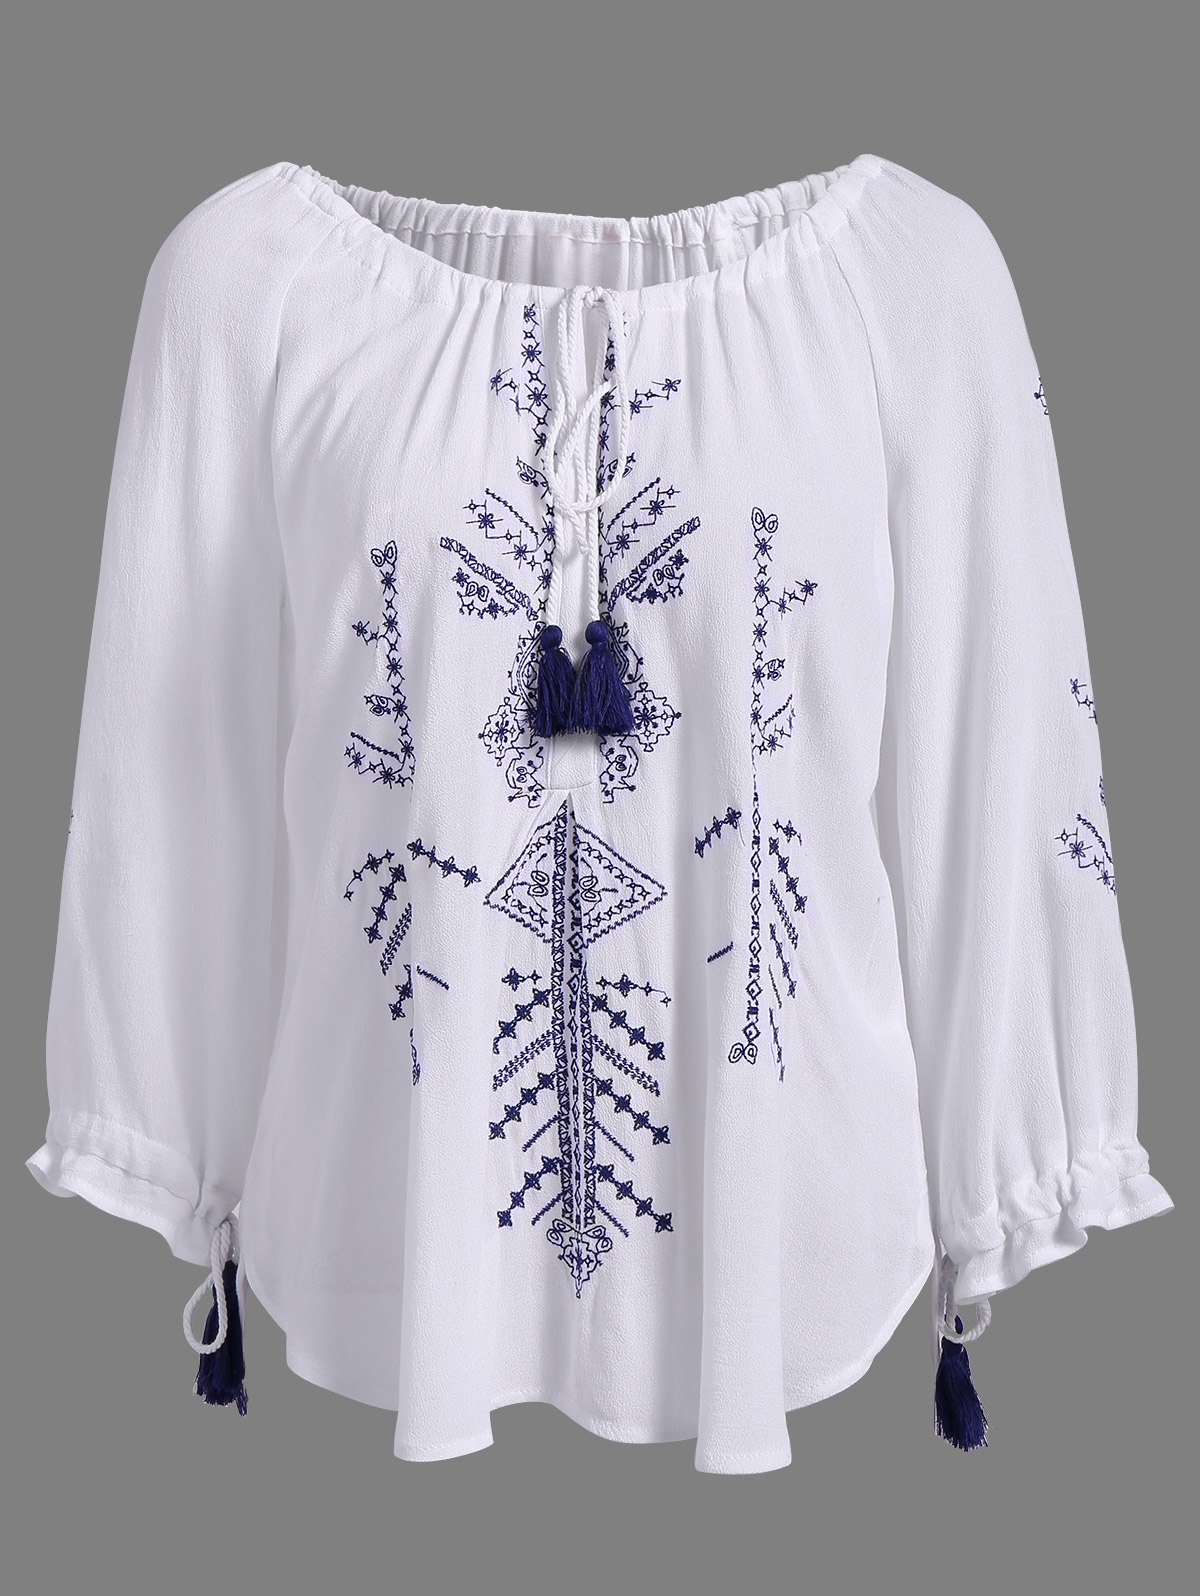 Best Stylish Round Neck 3/4 Sleeve Embroidered Lace-Up Blouse For Women